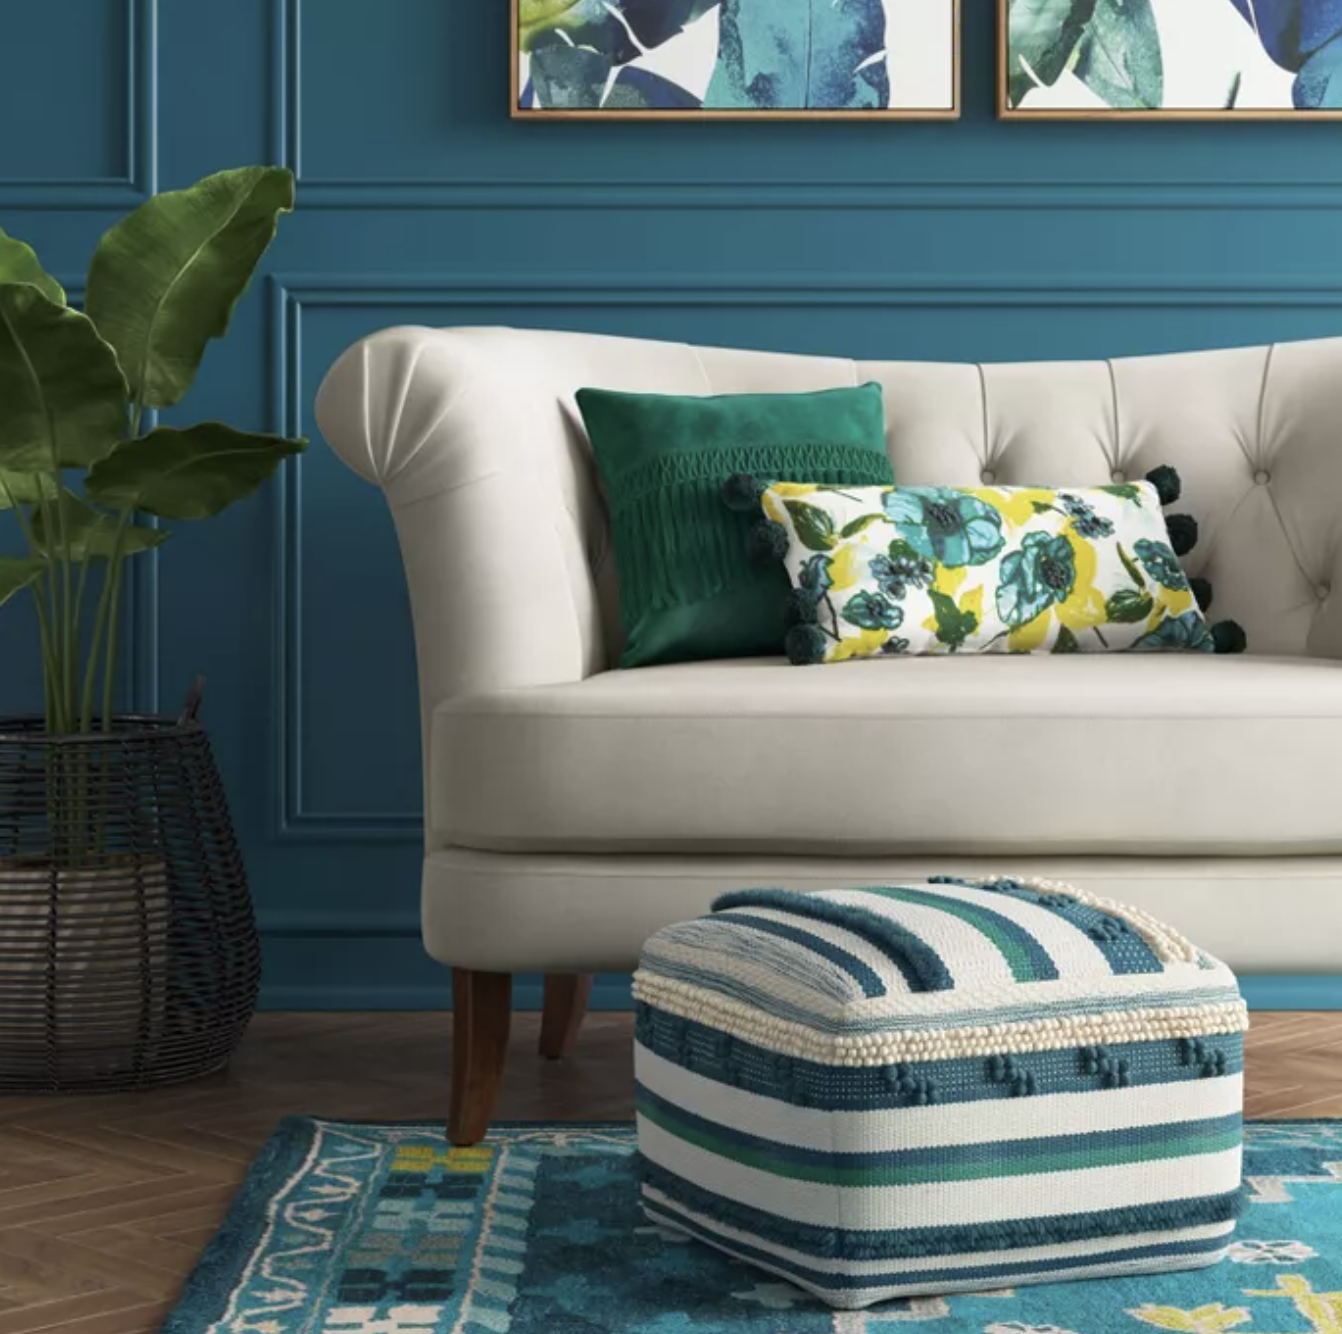 Teal, blue, and white striped pouf next to a white couch with green and floral pillows